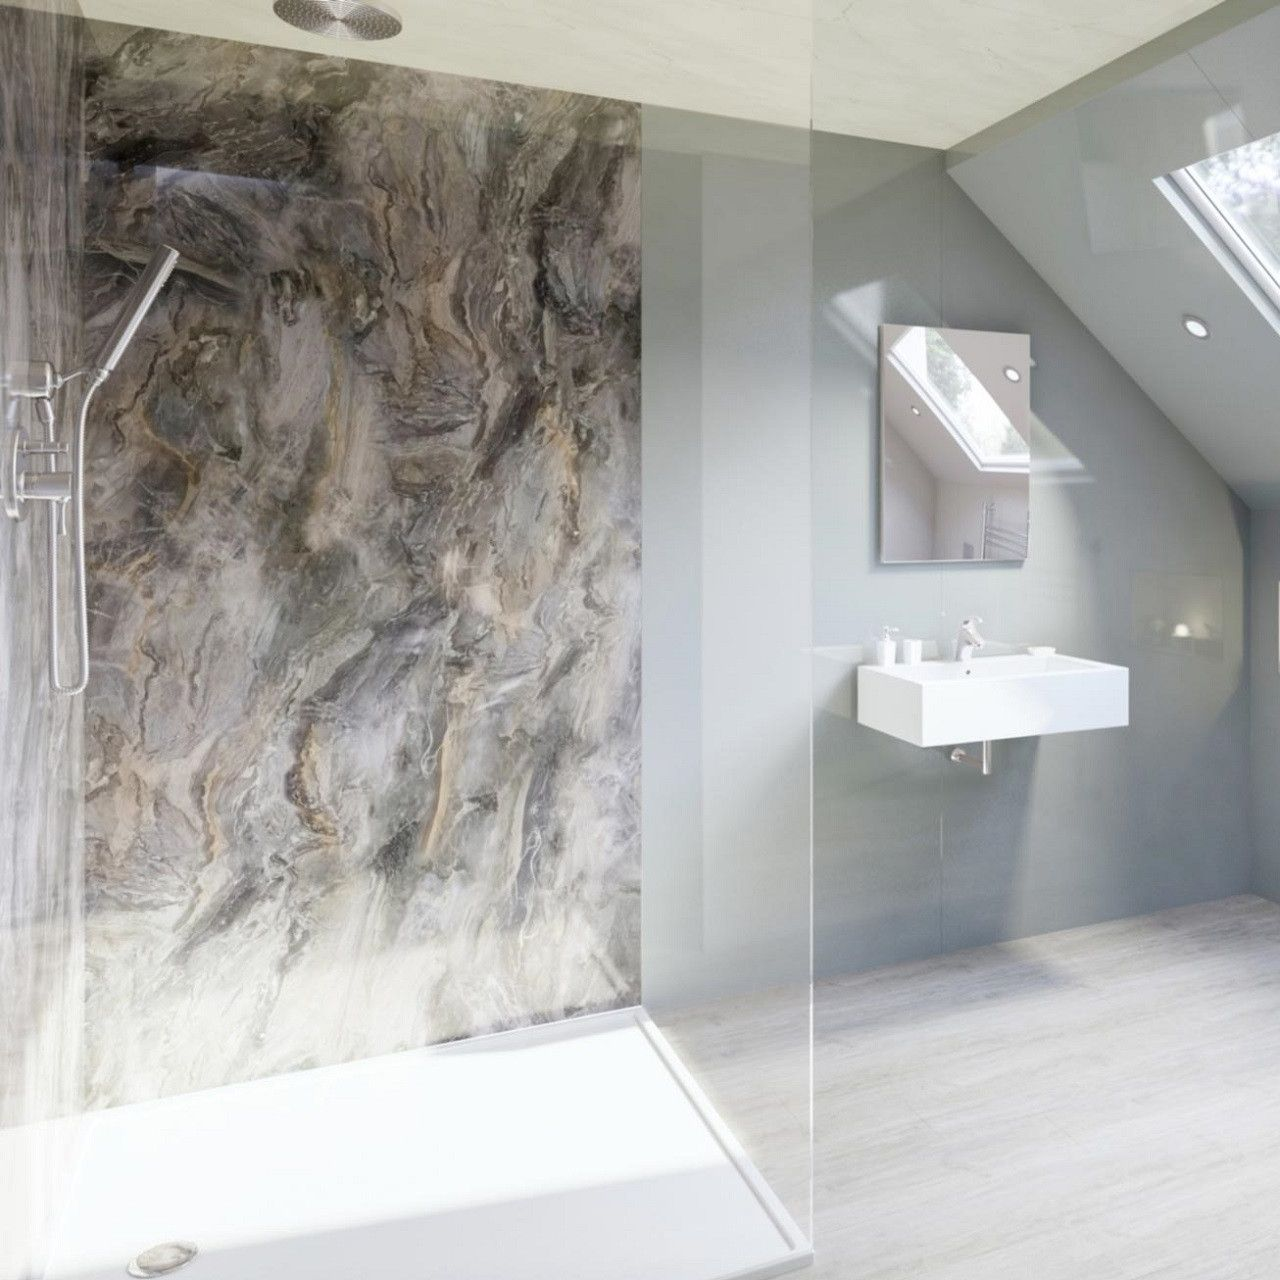 Looking For An Alternative To Bathroom Tiles Why Not Opt For Waterproof Wall Panels Bathroom Wall Panels Bathroom Shower Walls Alternative To Bathroom Tiles